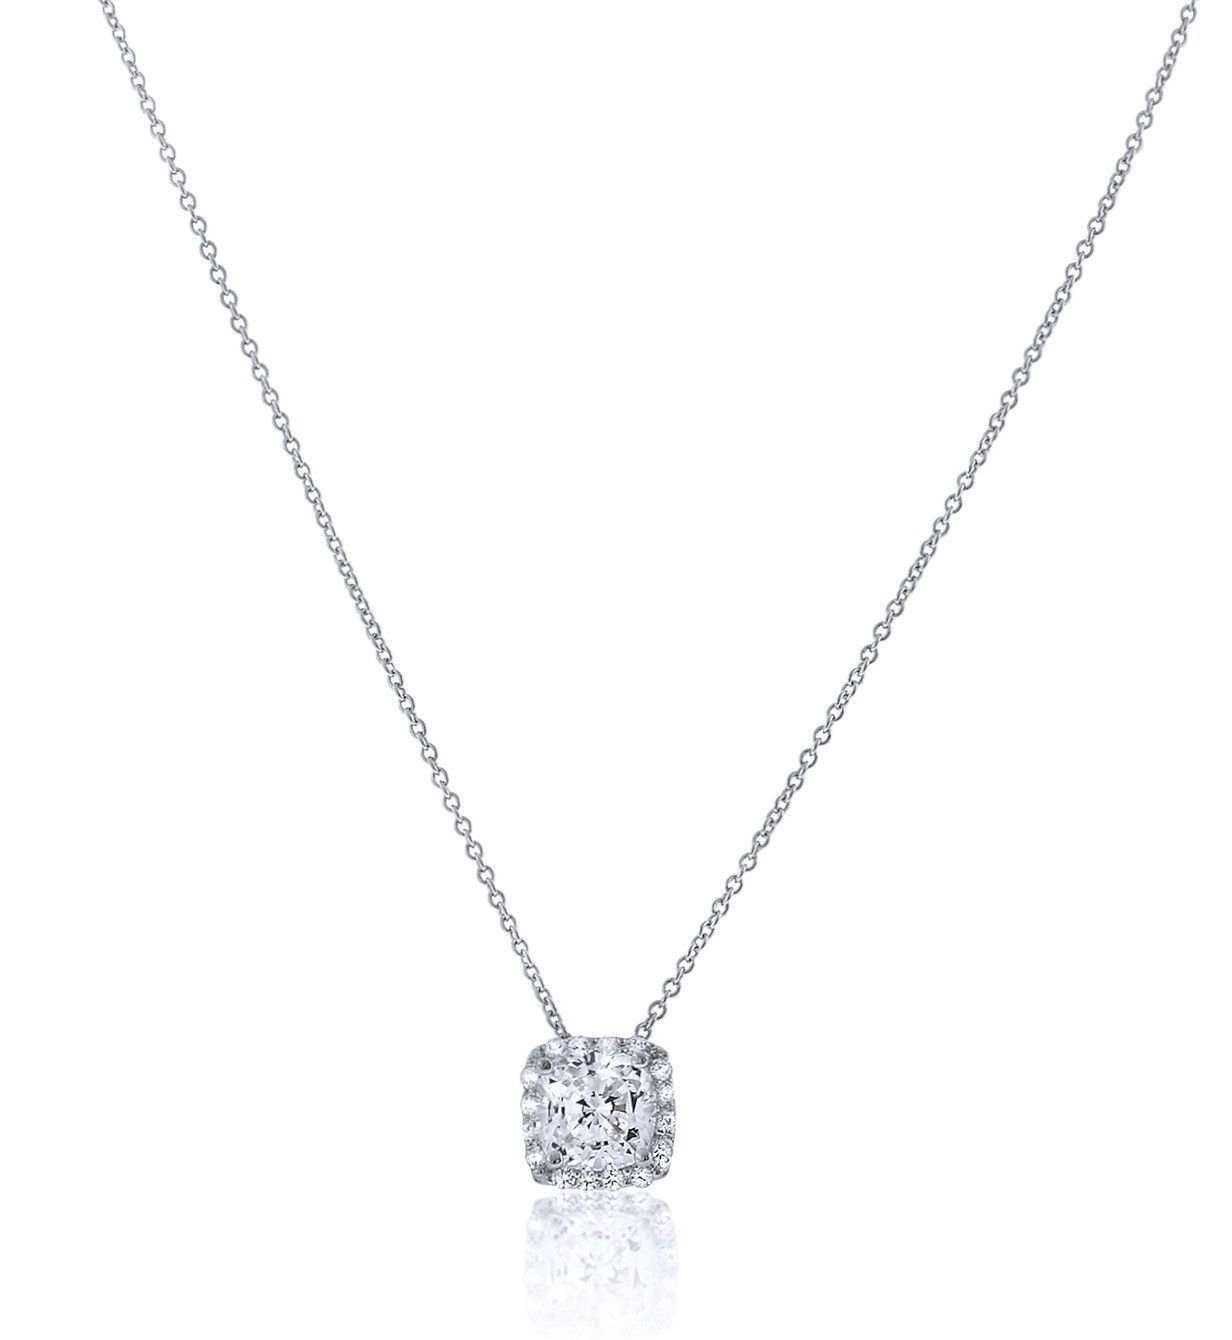 Chandi Diamond Square Pendant Necklace With Halo | Jewelry In 2019 For Latest Square Sparkle Halo Pendant Necklaces (View 2 of 25)